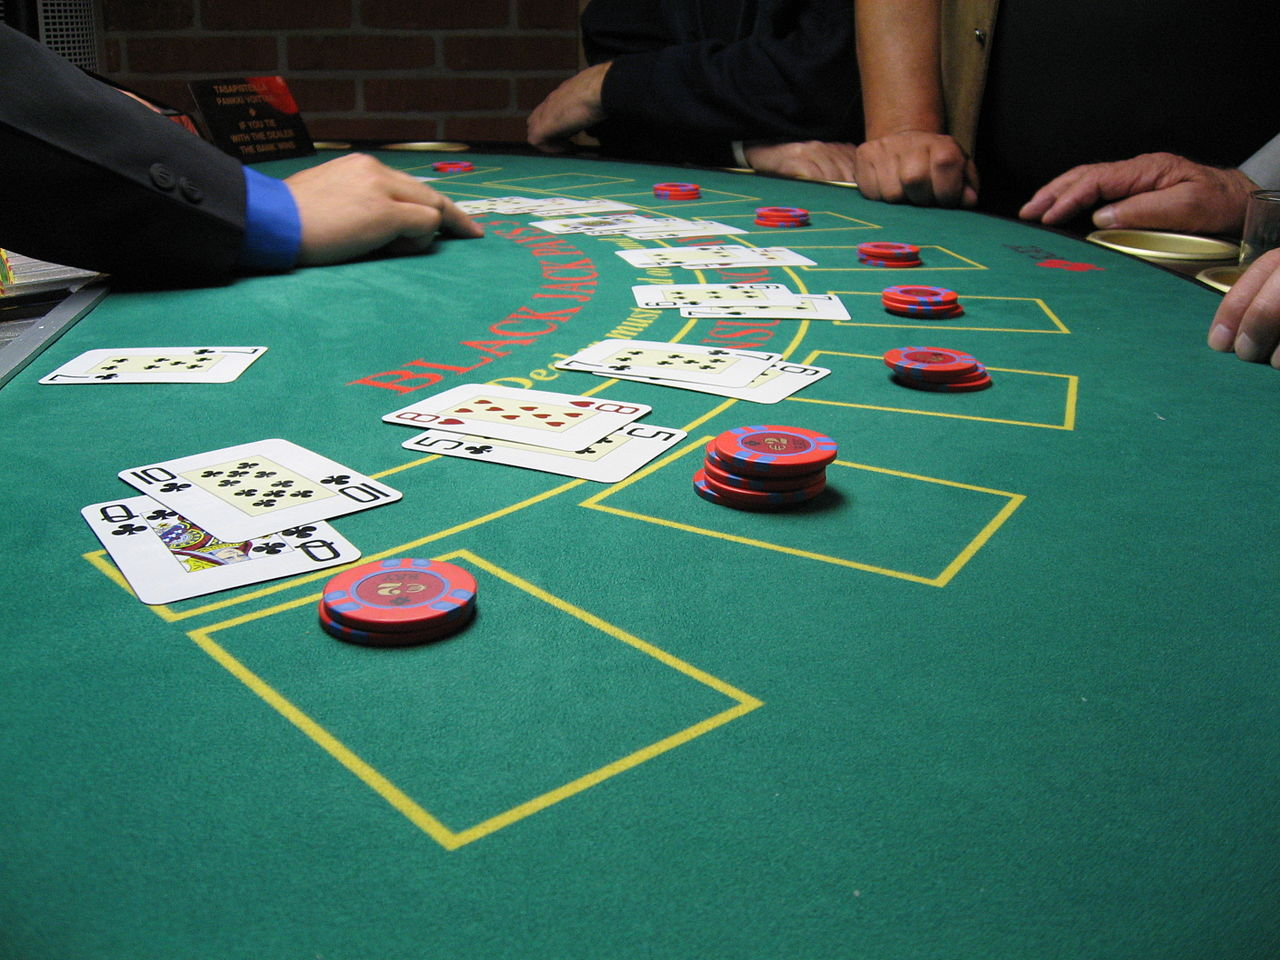 Casino night game when was the blue chip casino built